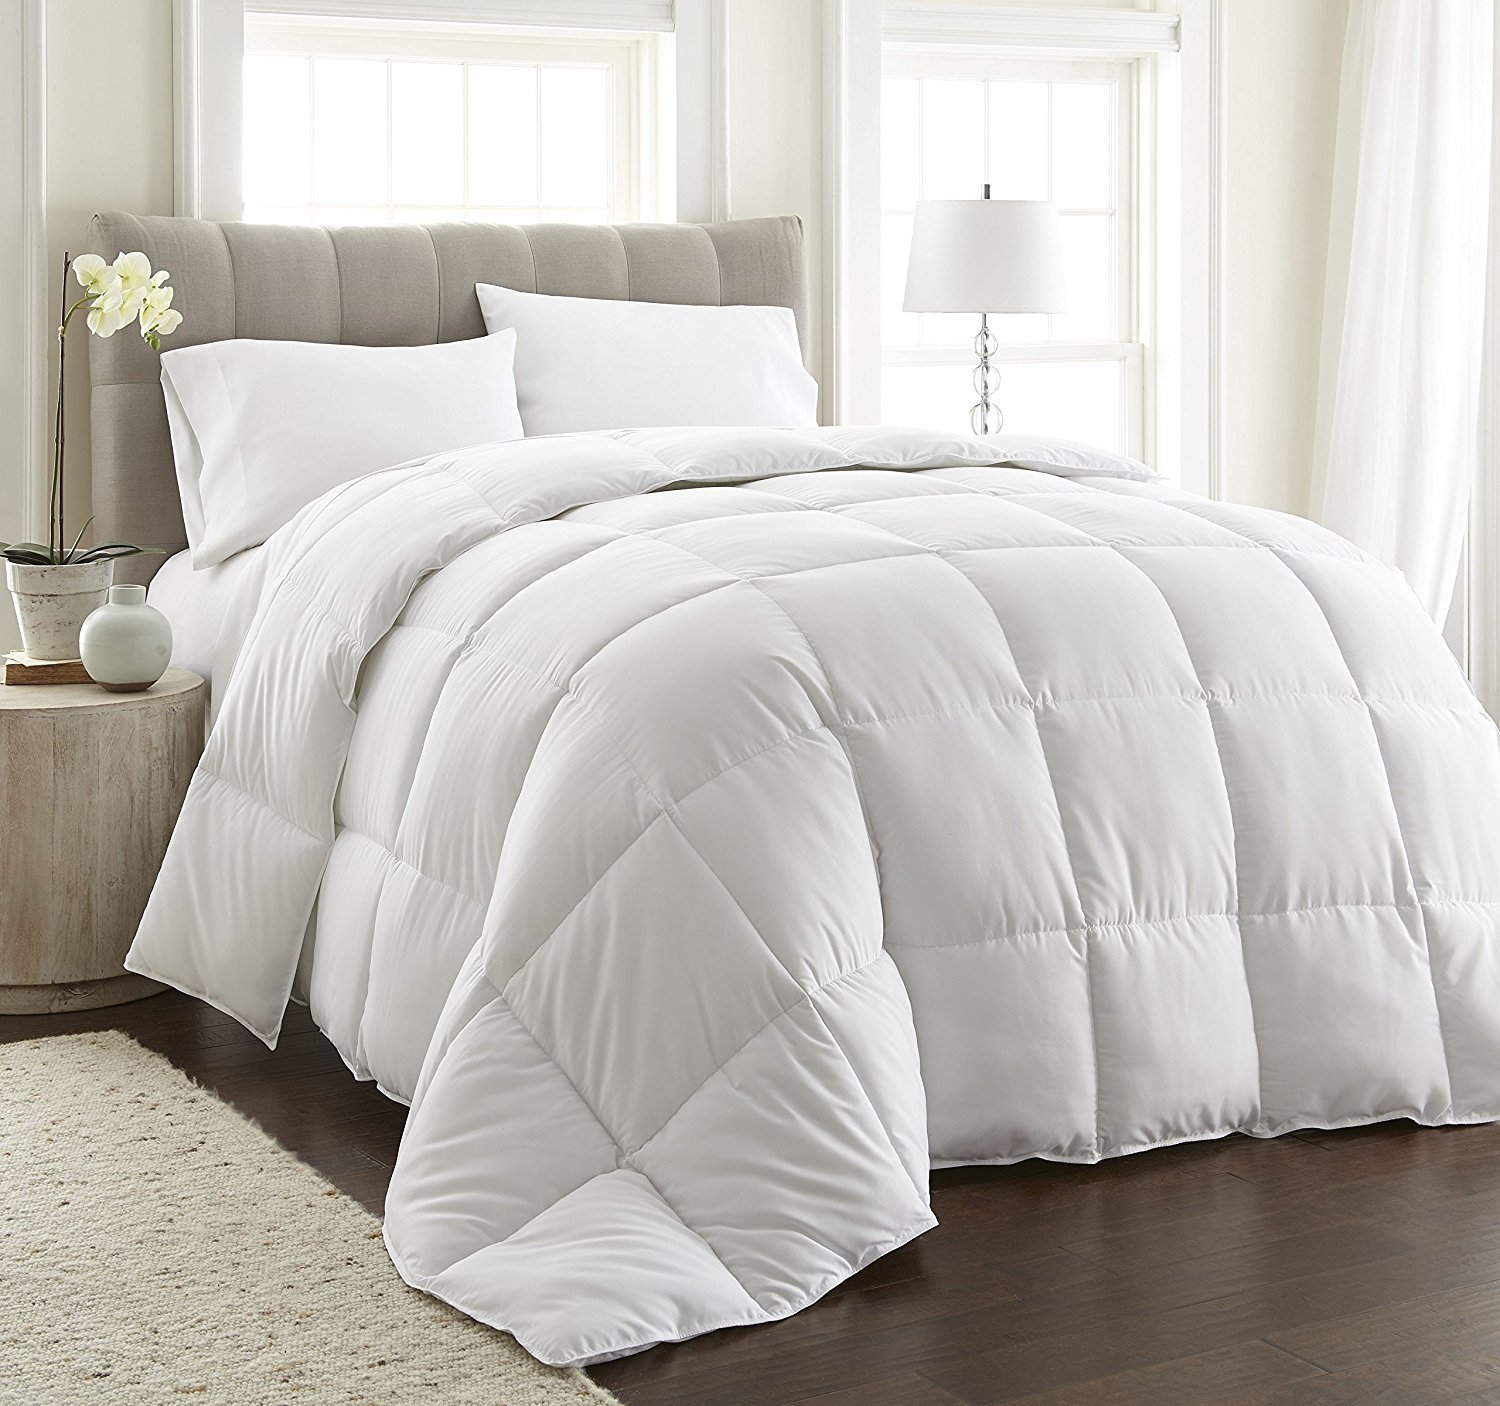 Unite Down Extremely Soft Goose Down Comforter/Duvet/Quilt For All Seasons 100% Organic Cotton (Cal King 108x94inch, White)